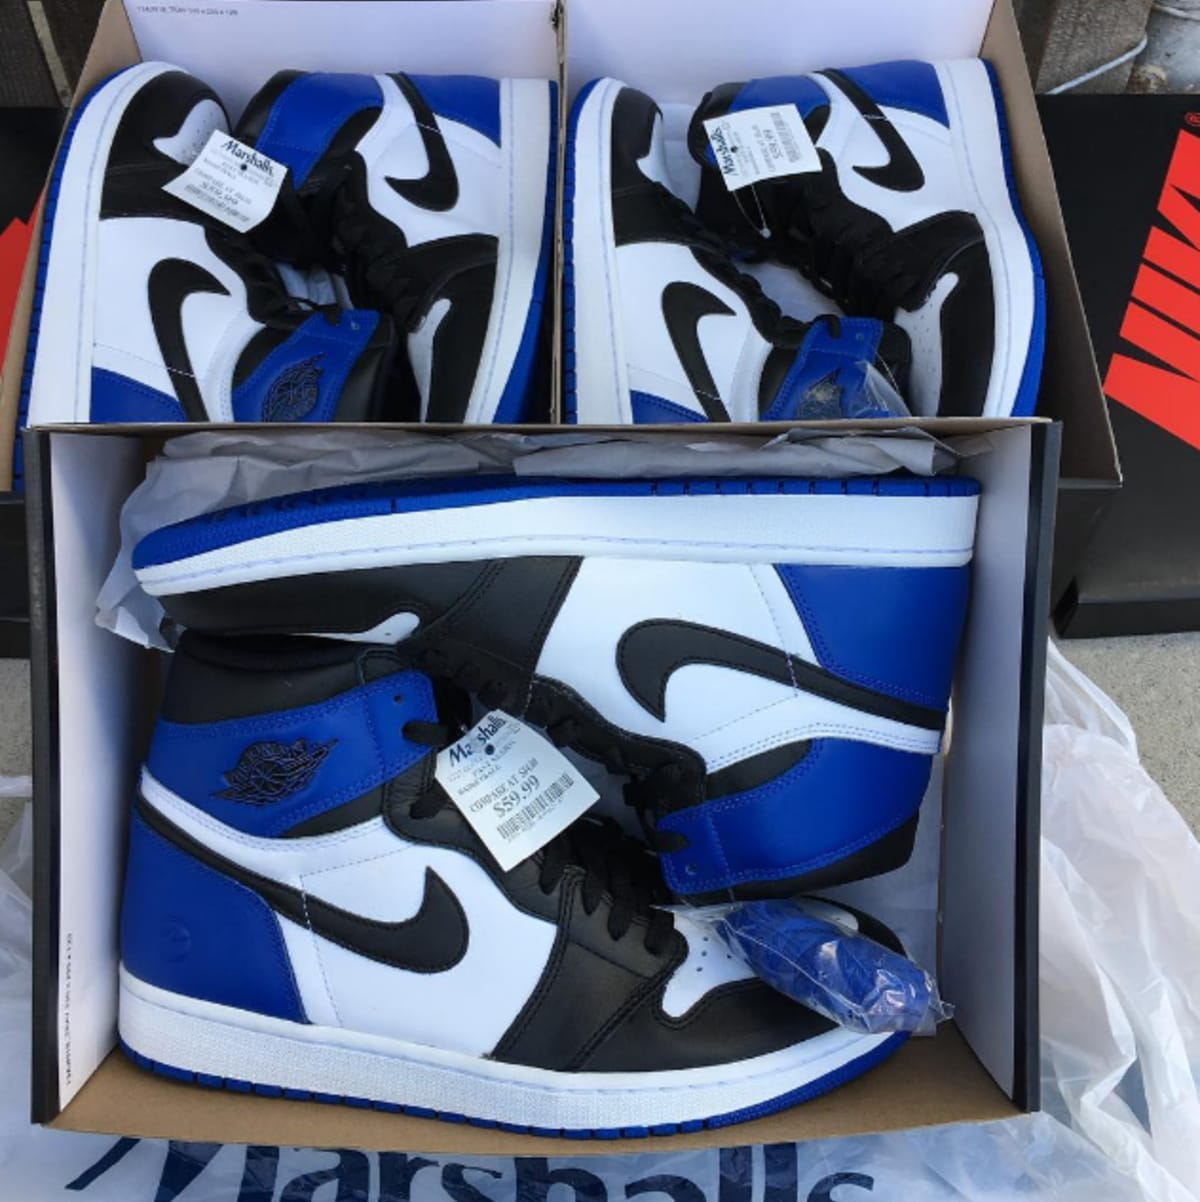 342cf45c3478 How Hyped Sneakers End up at Marshalls